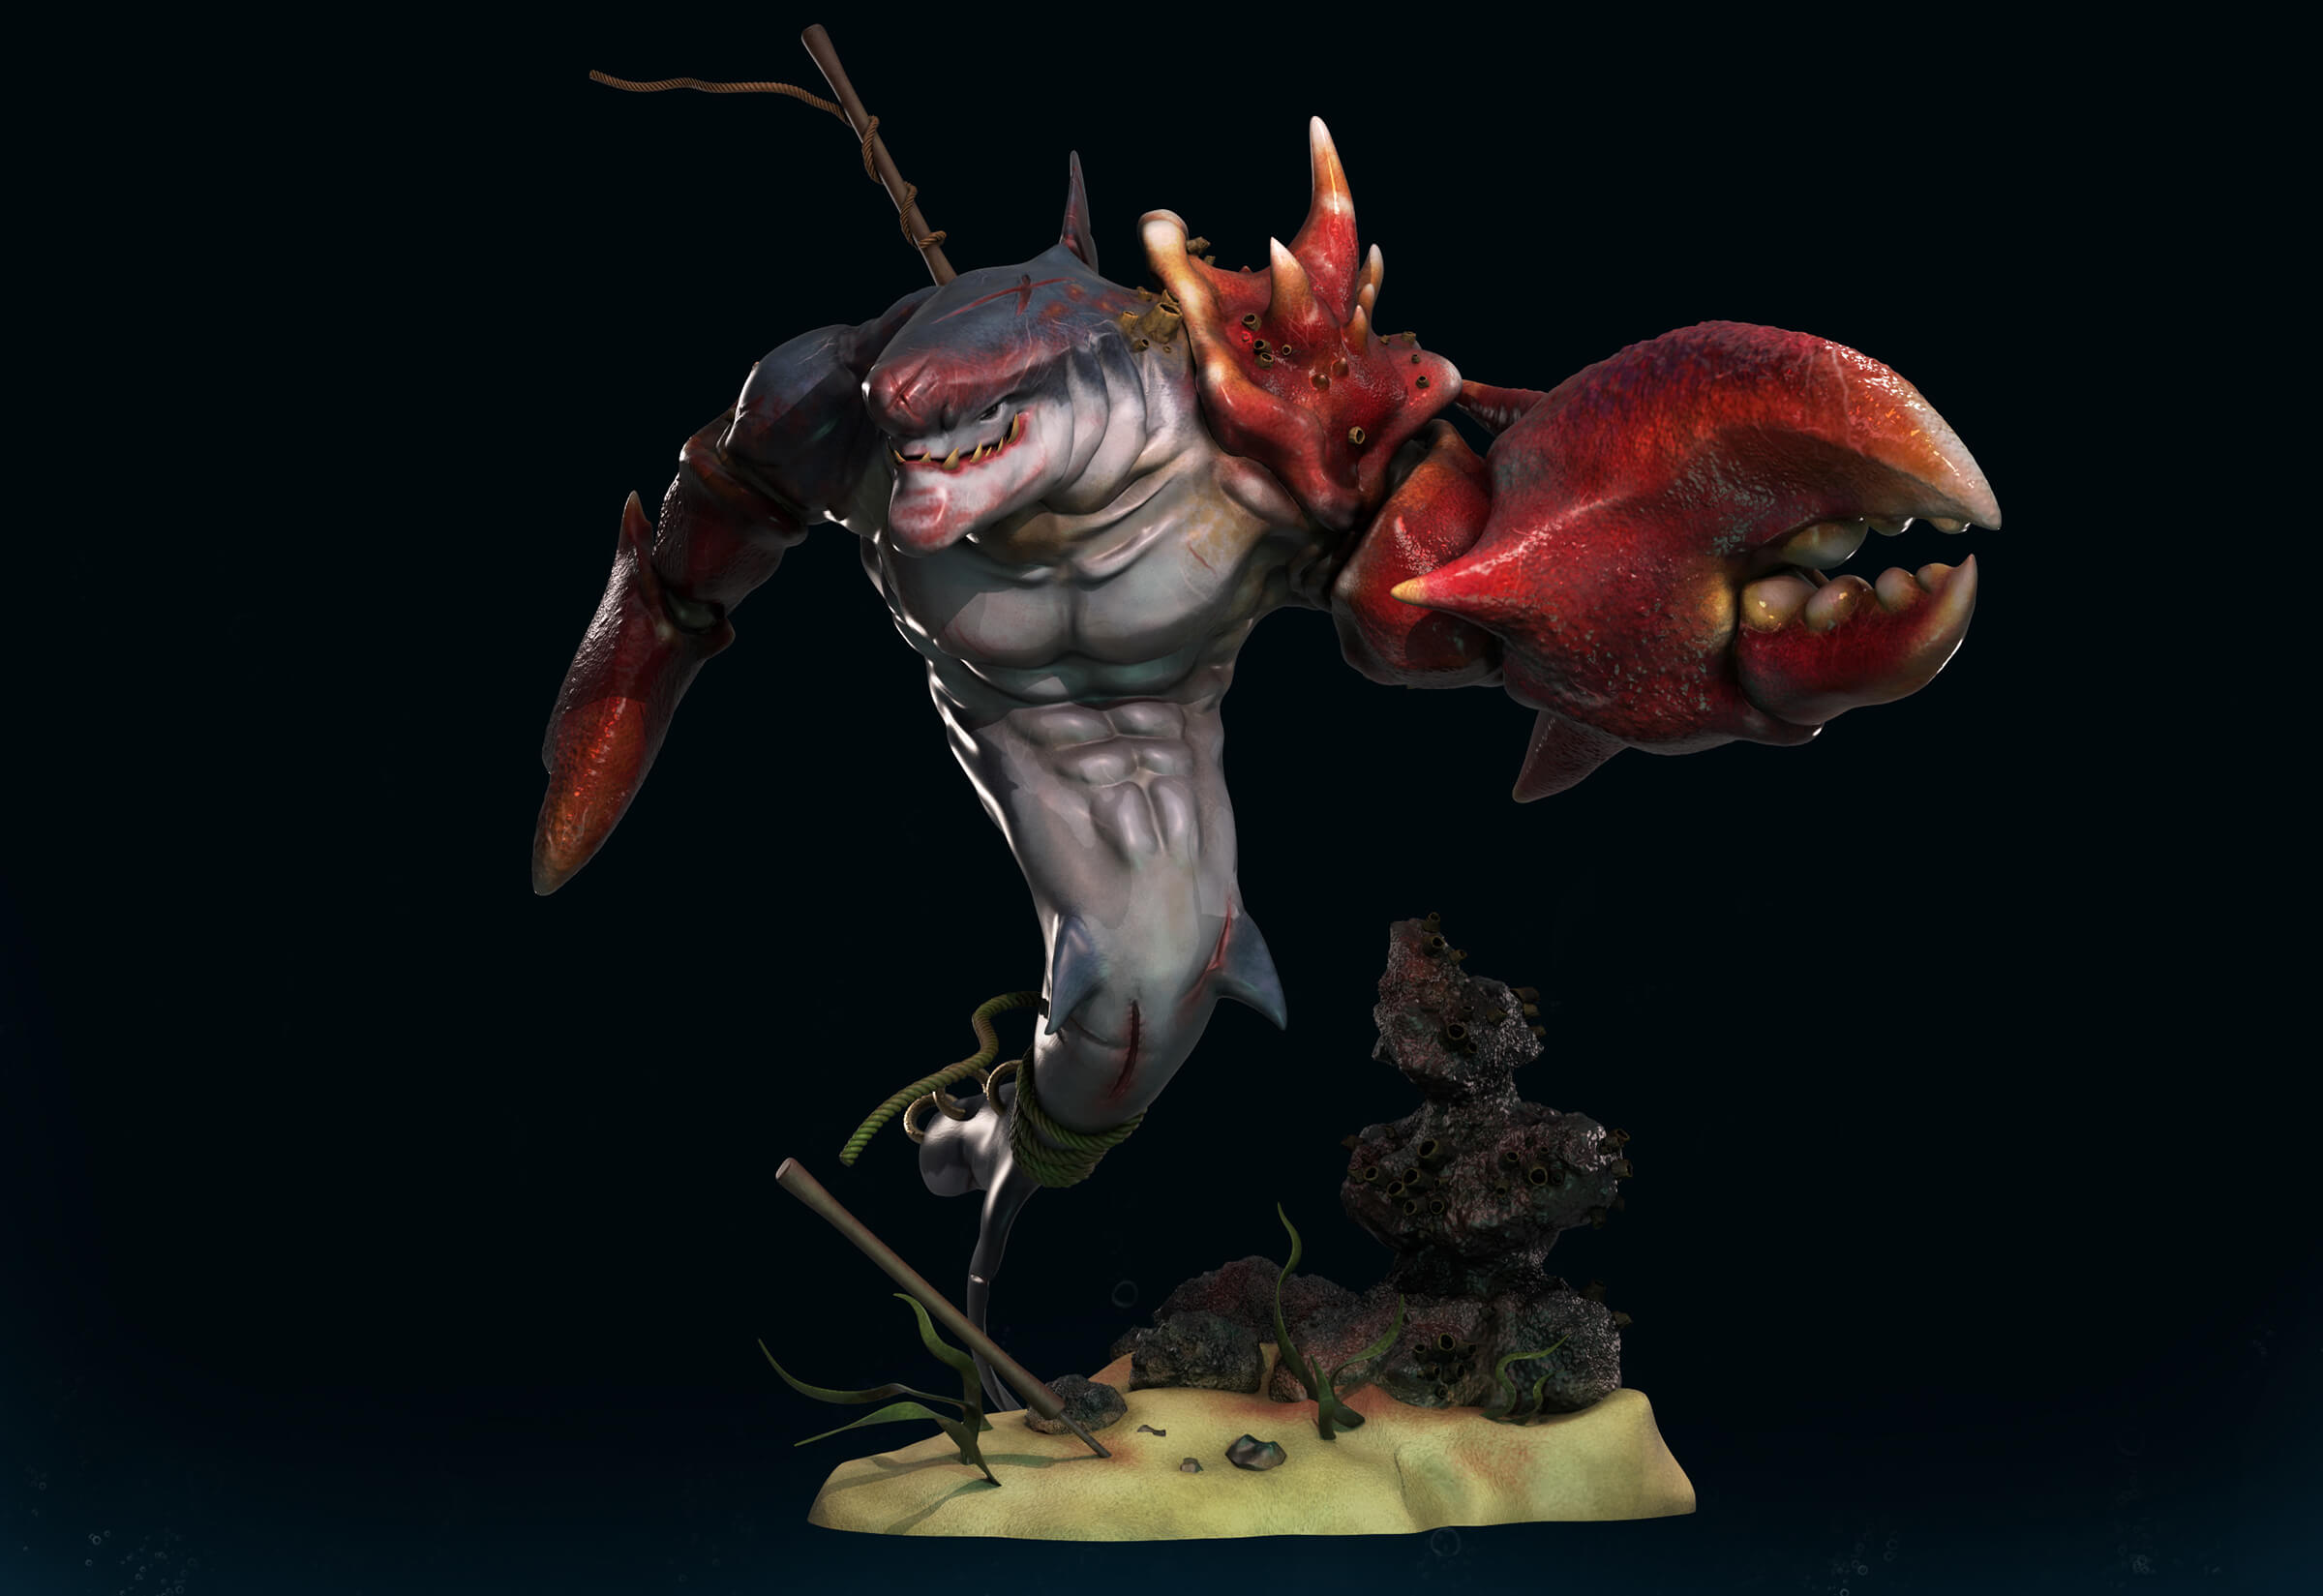 A creature with a dolphin's head and lobster claws